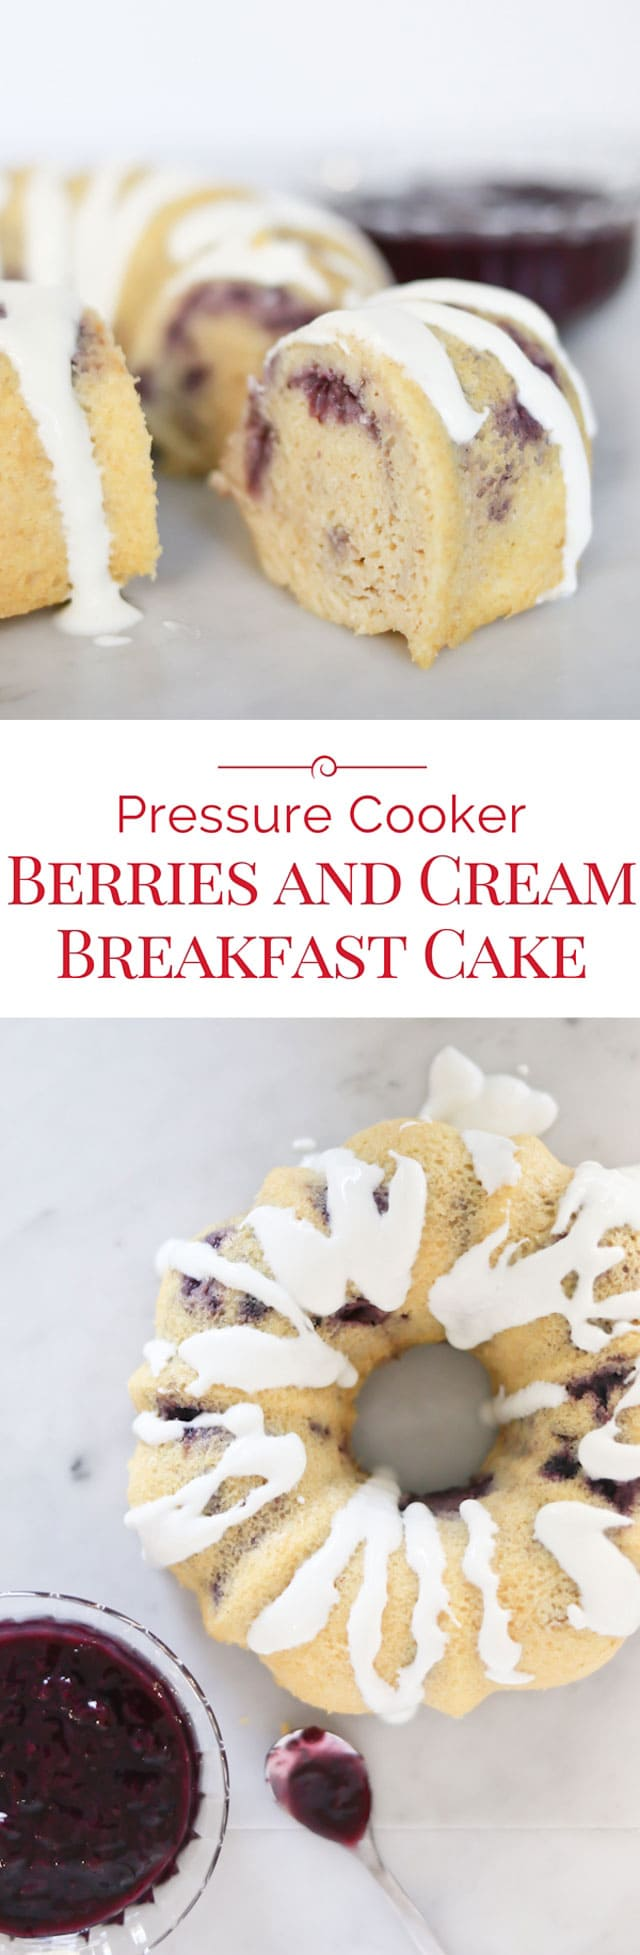 titled photo collage - Pressure Cooker Berries and Cream Breakfast Cake